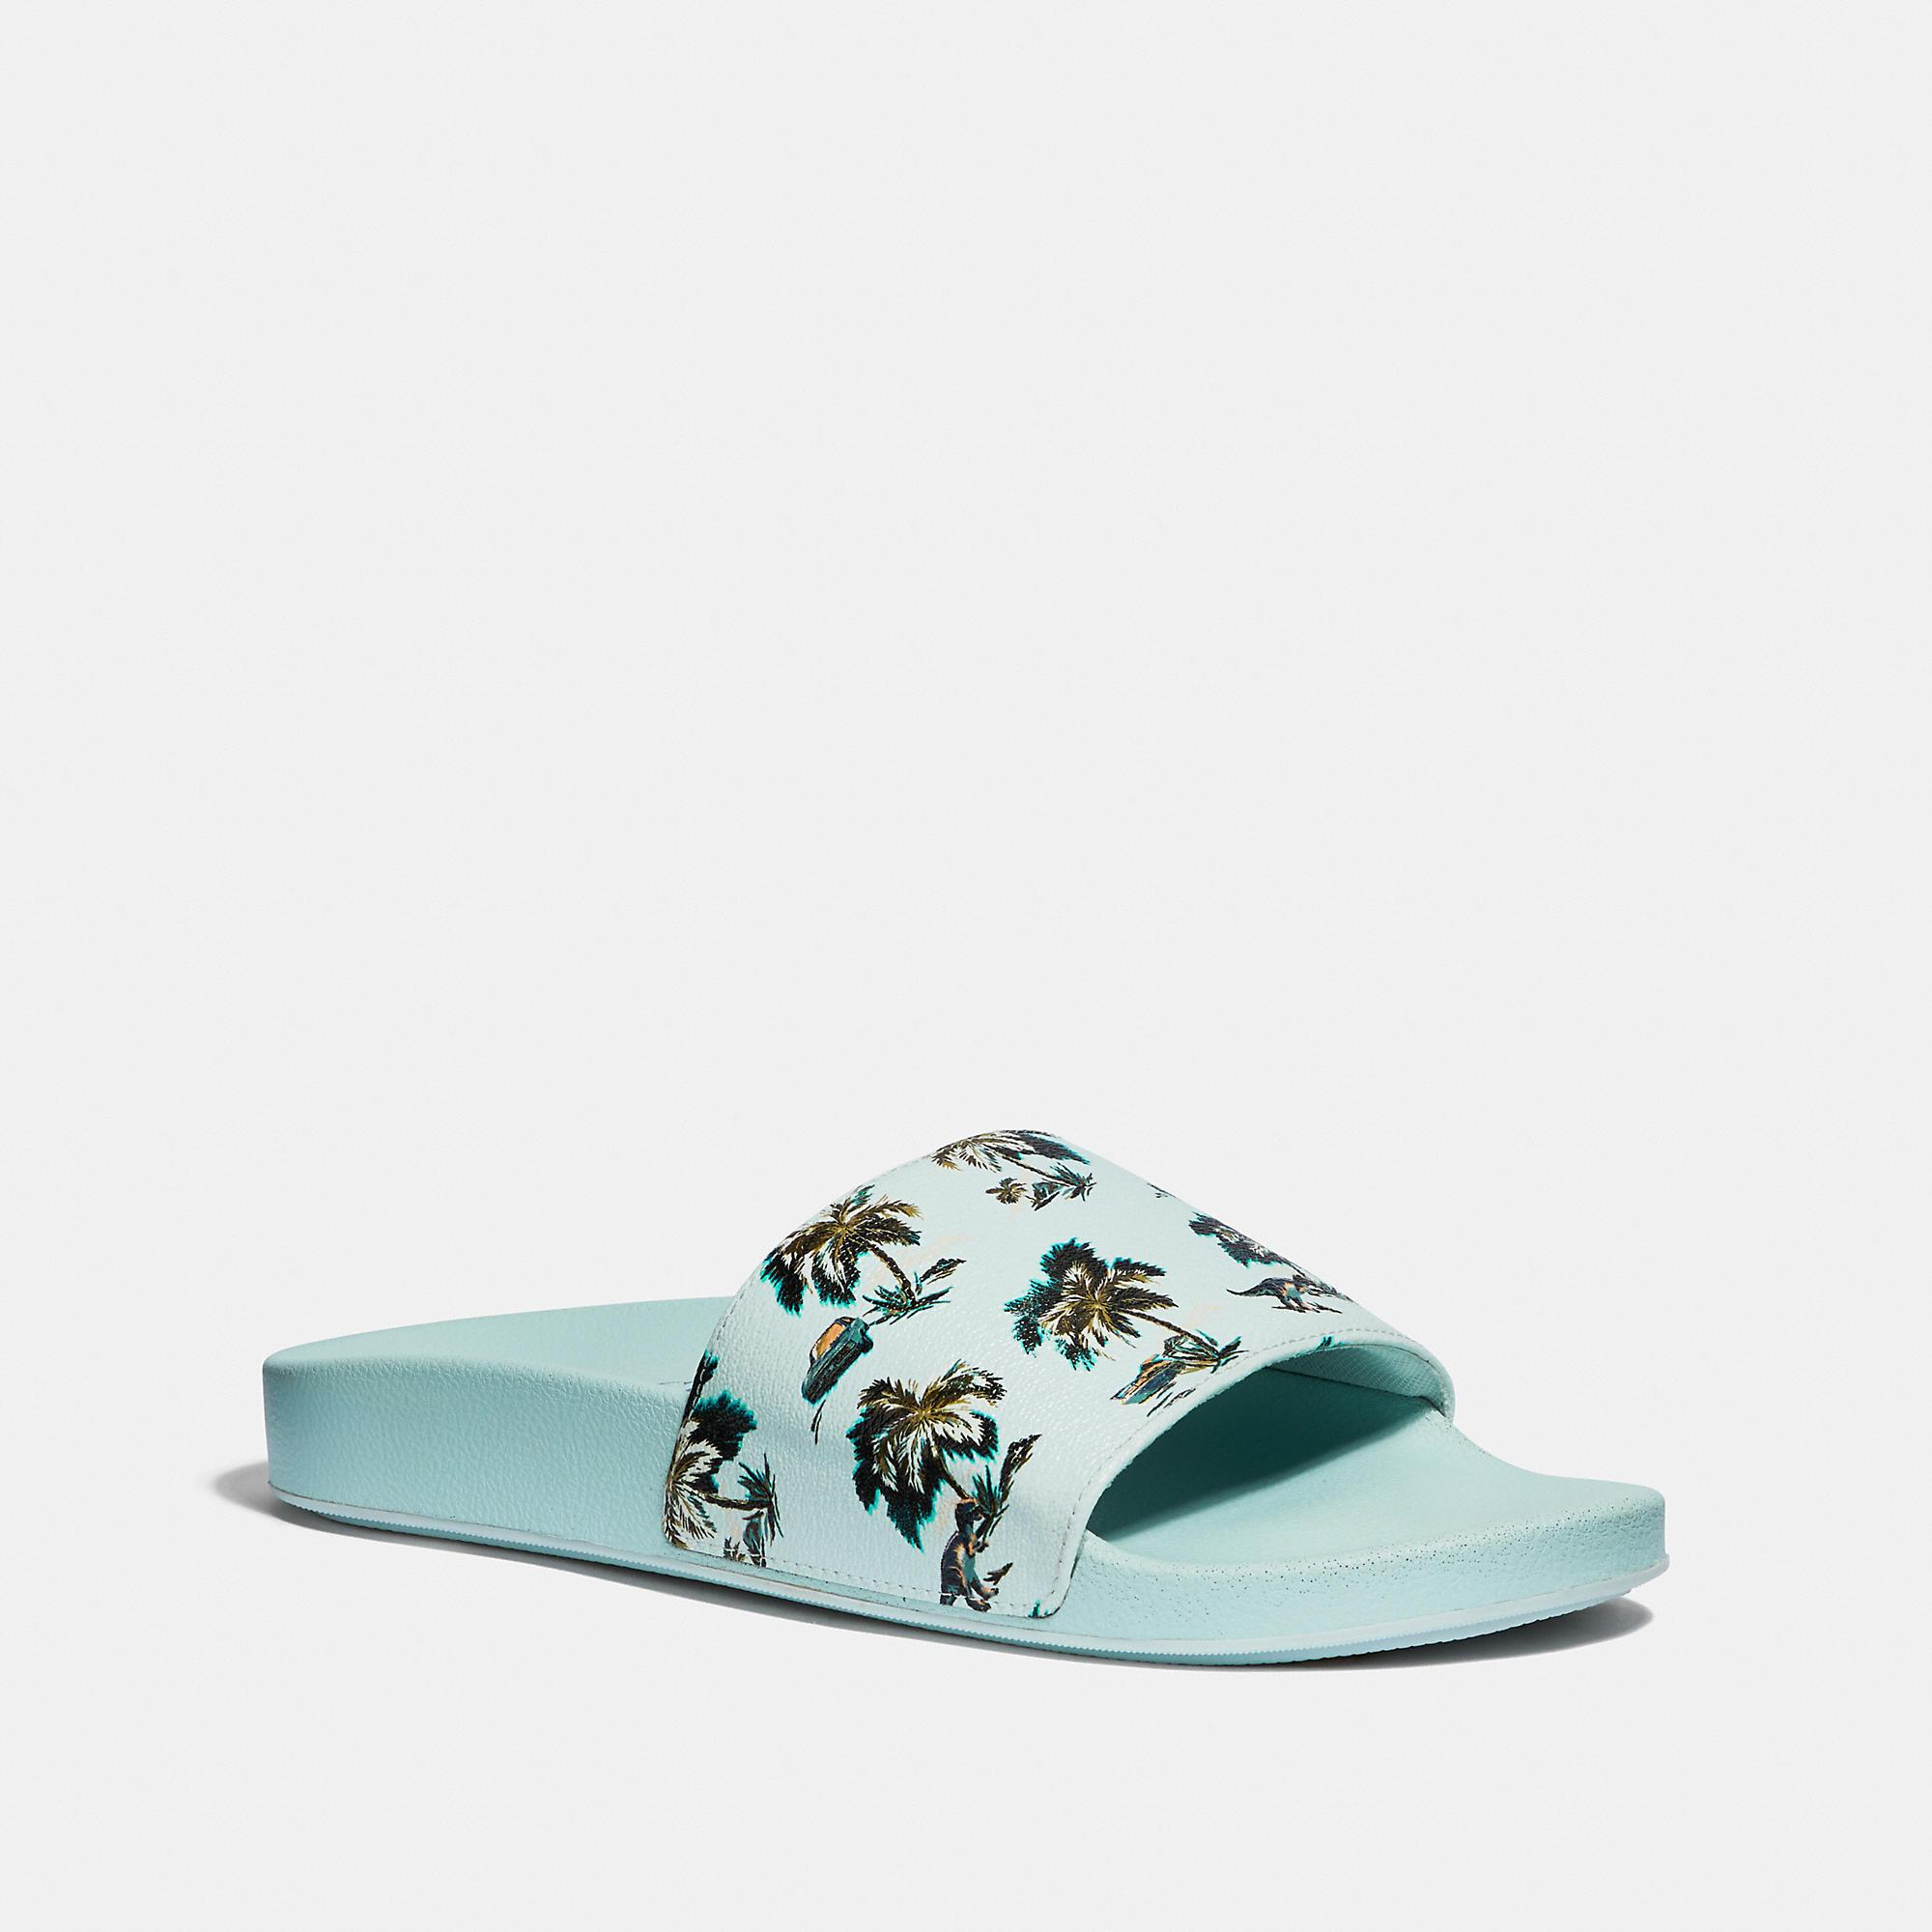 304327c96a8 Lyst - COACH Slide With Print in Blue for Men